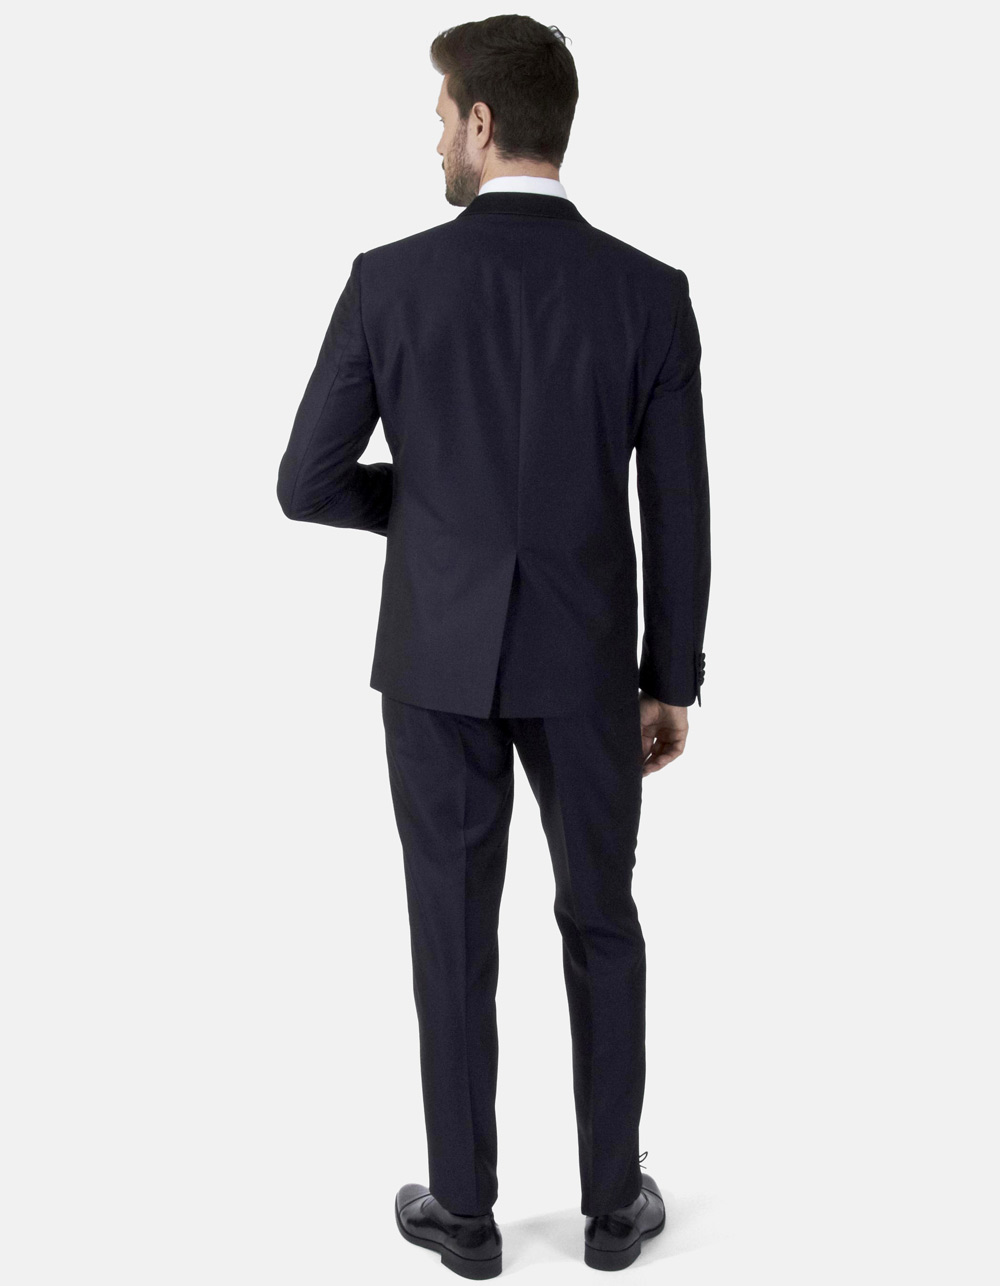 Ceremony dark blue suit - Backside